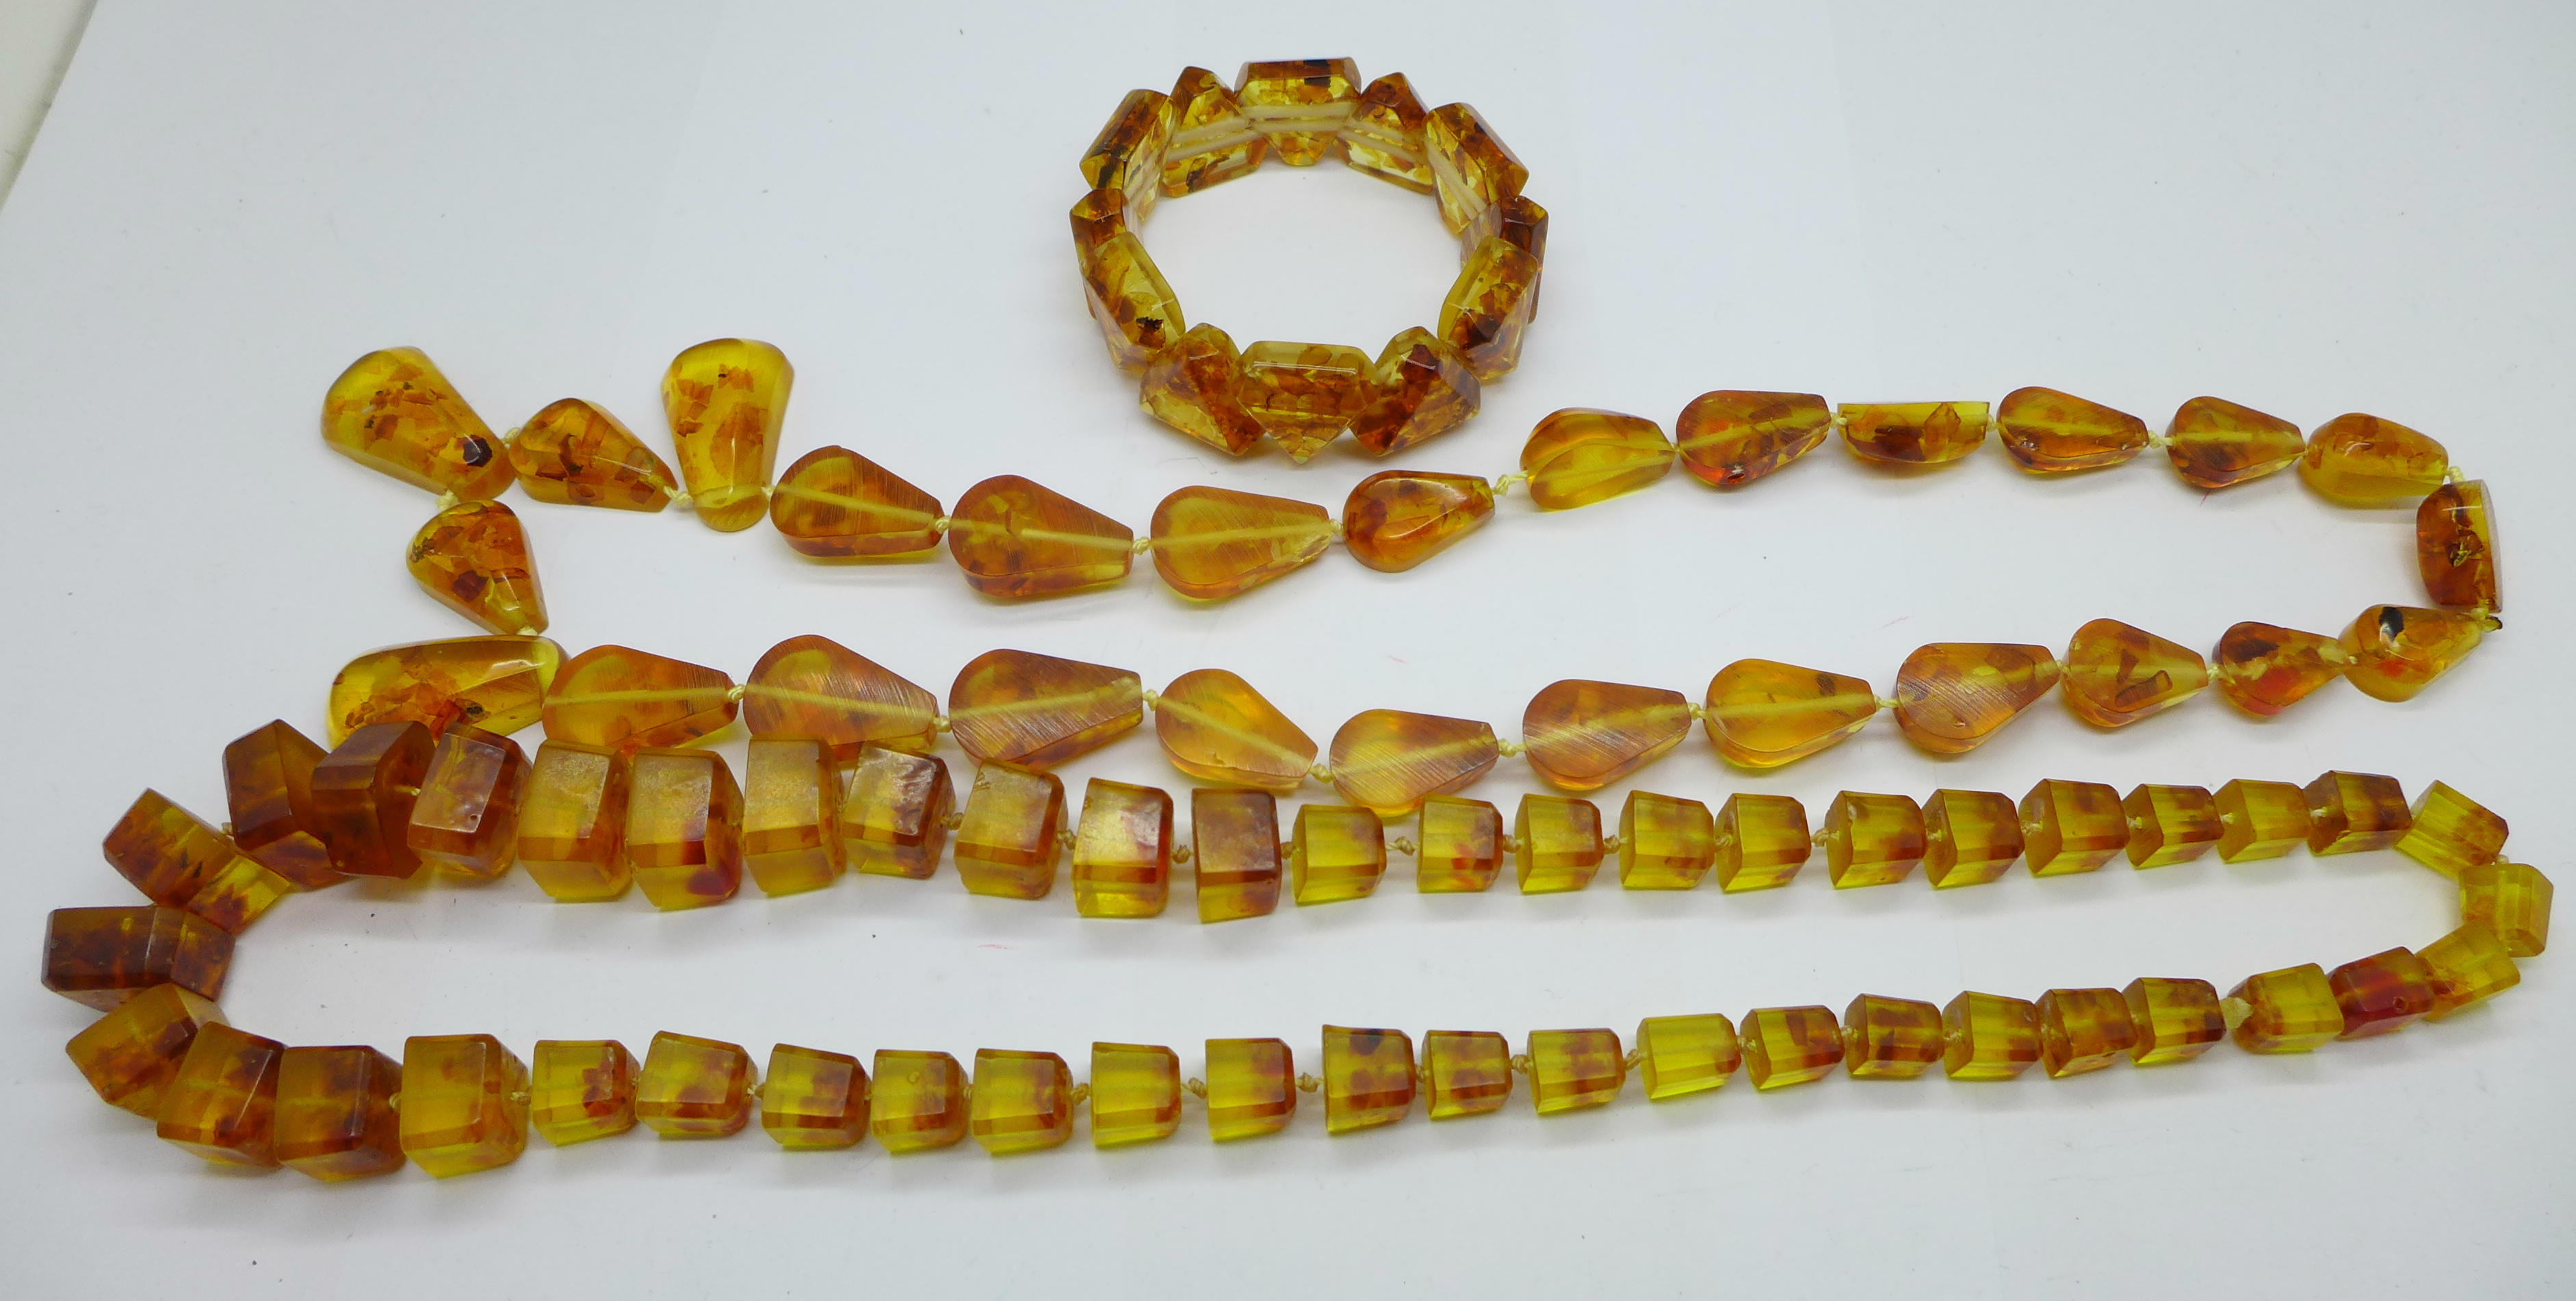 Two amber coloured bead necklaces and a bracelet